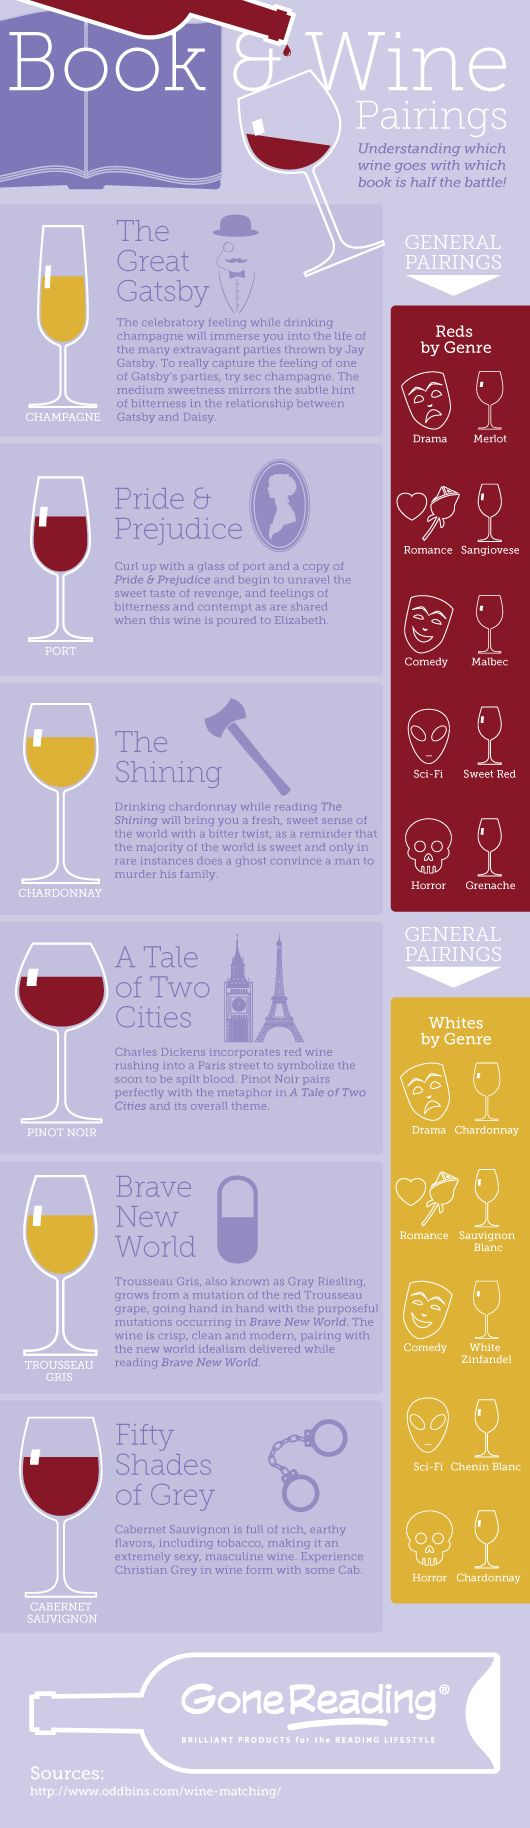 A guide to book and wine pairings.